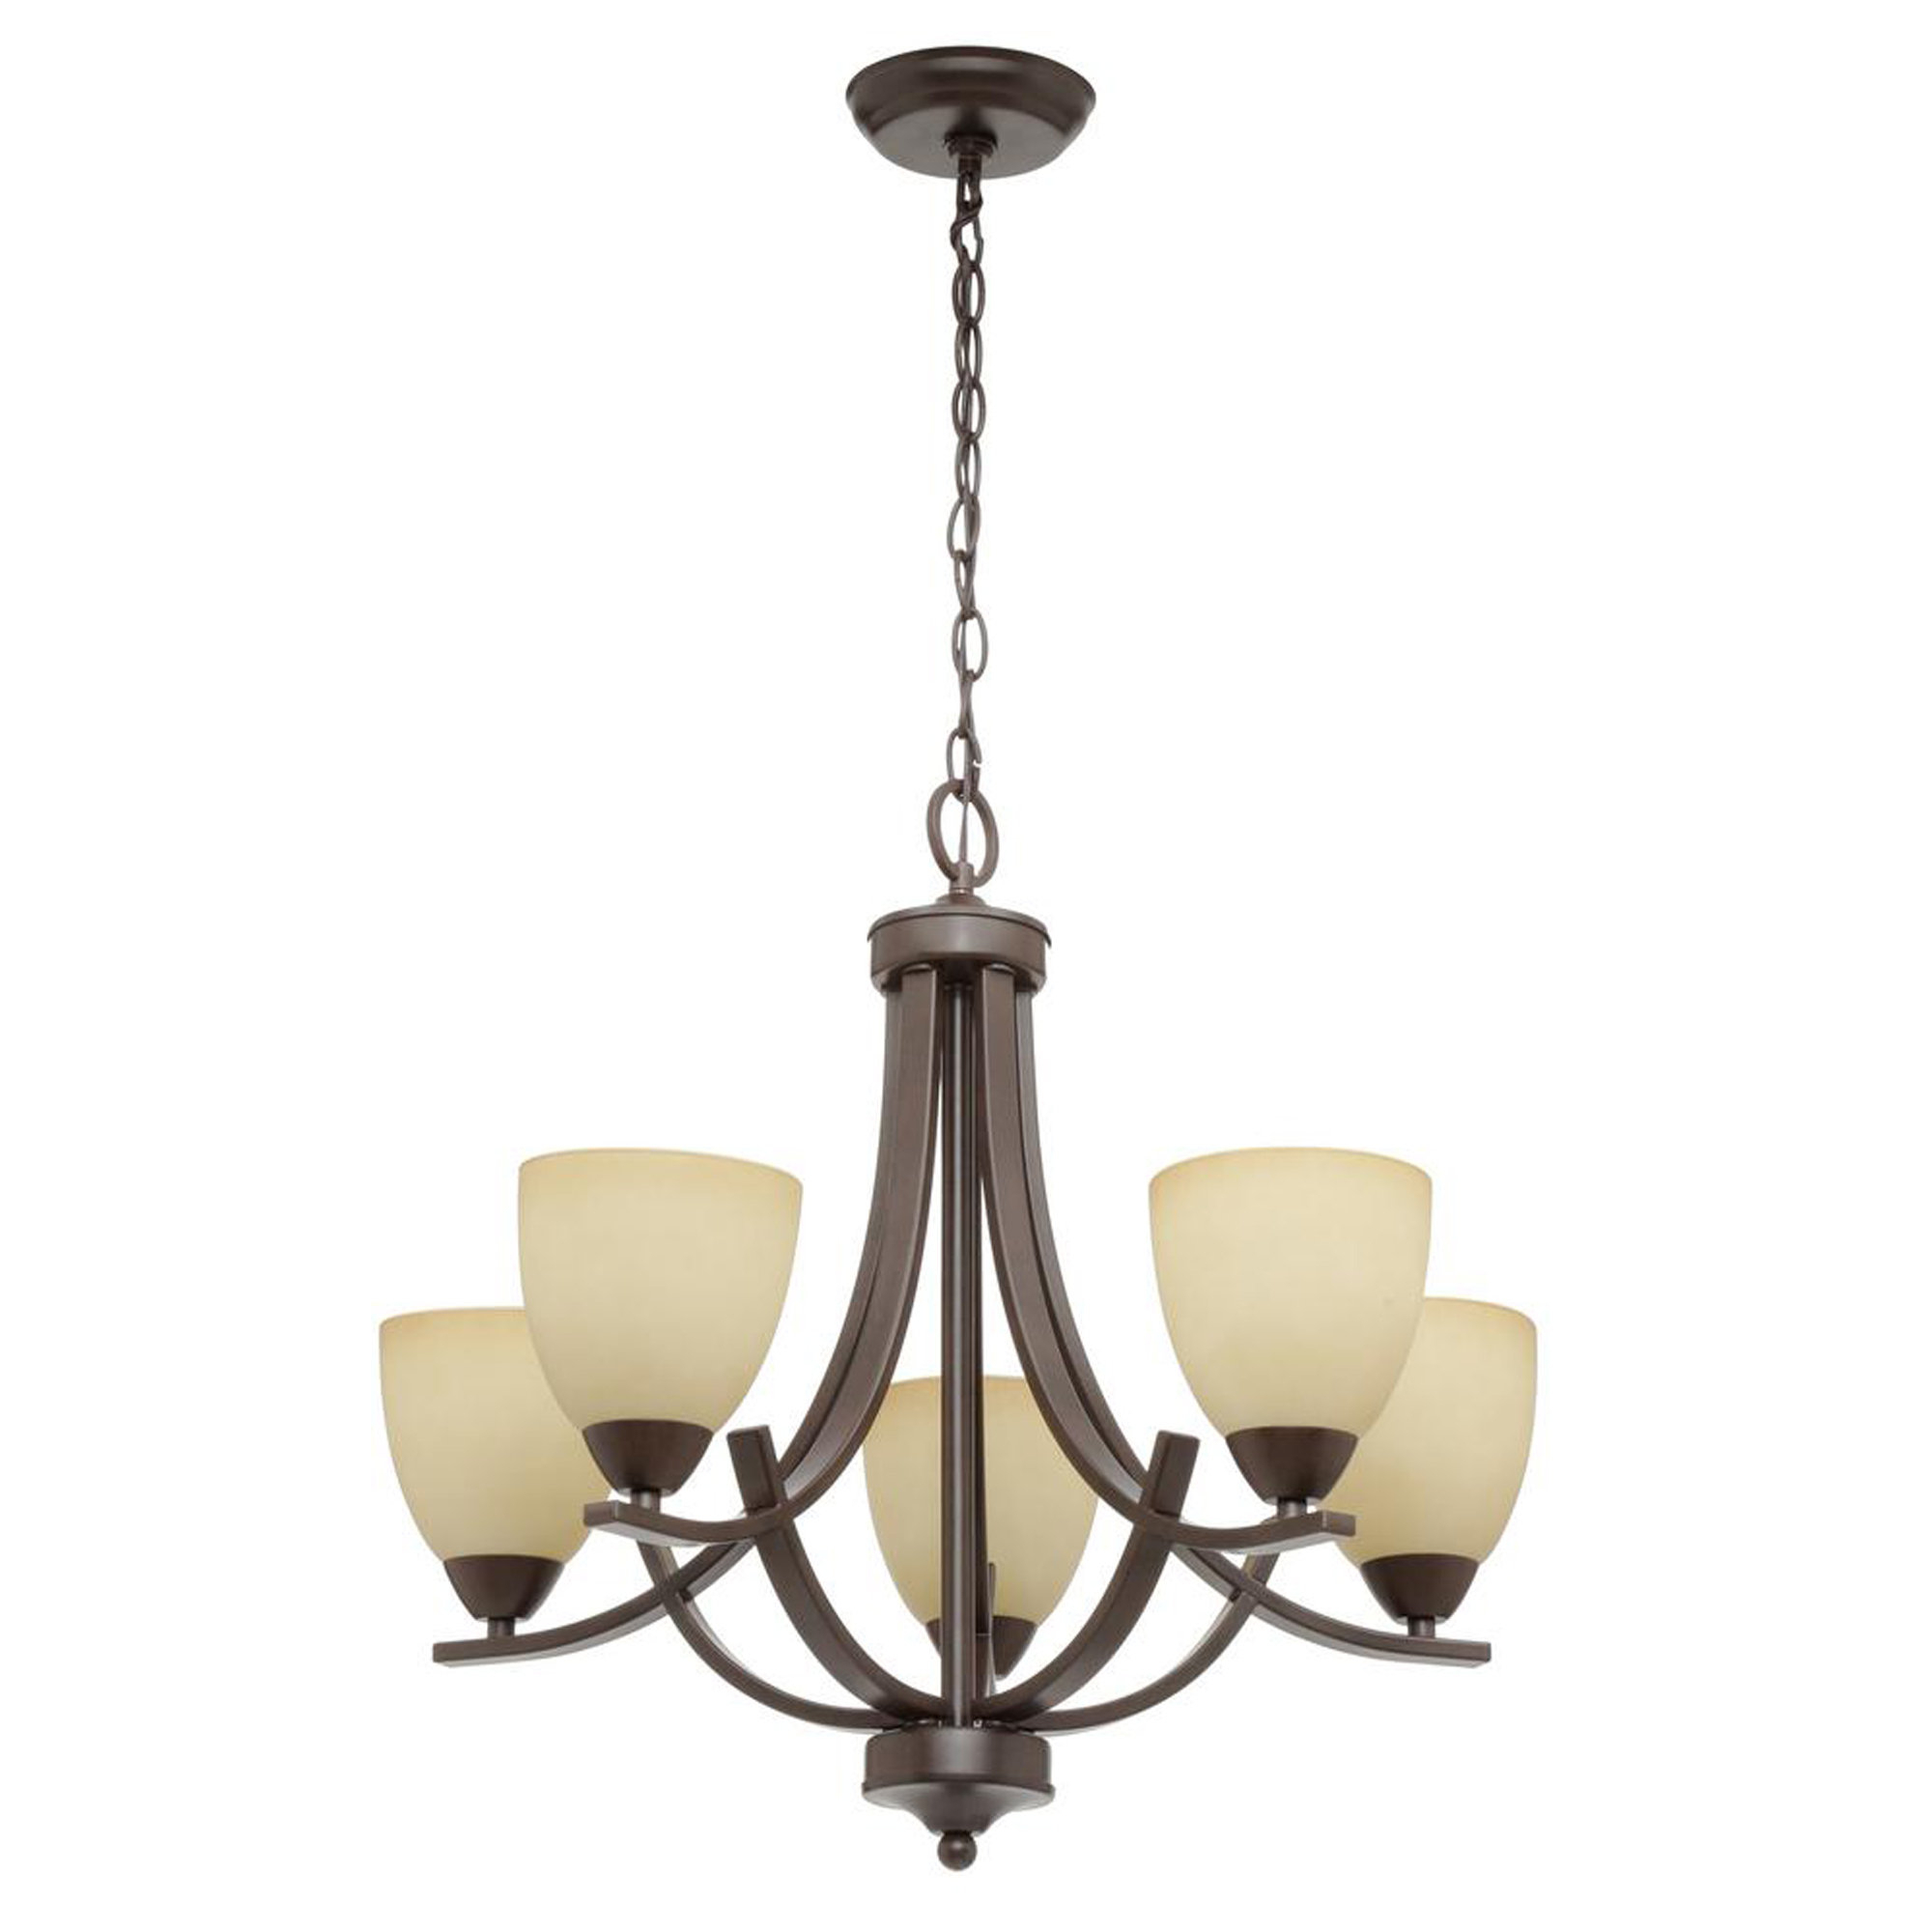 Crofoot 5-Light Shaded Chandelier with regard to Suki 5-Light Shaded Chandeliers (Image 5 of 30)